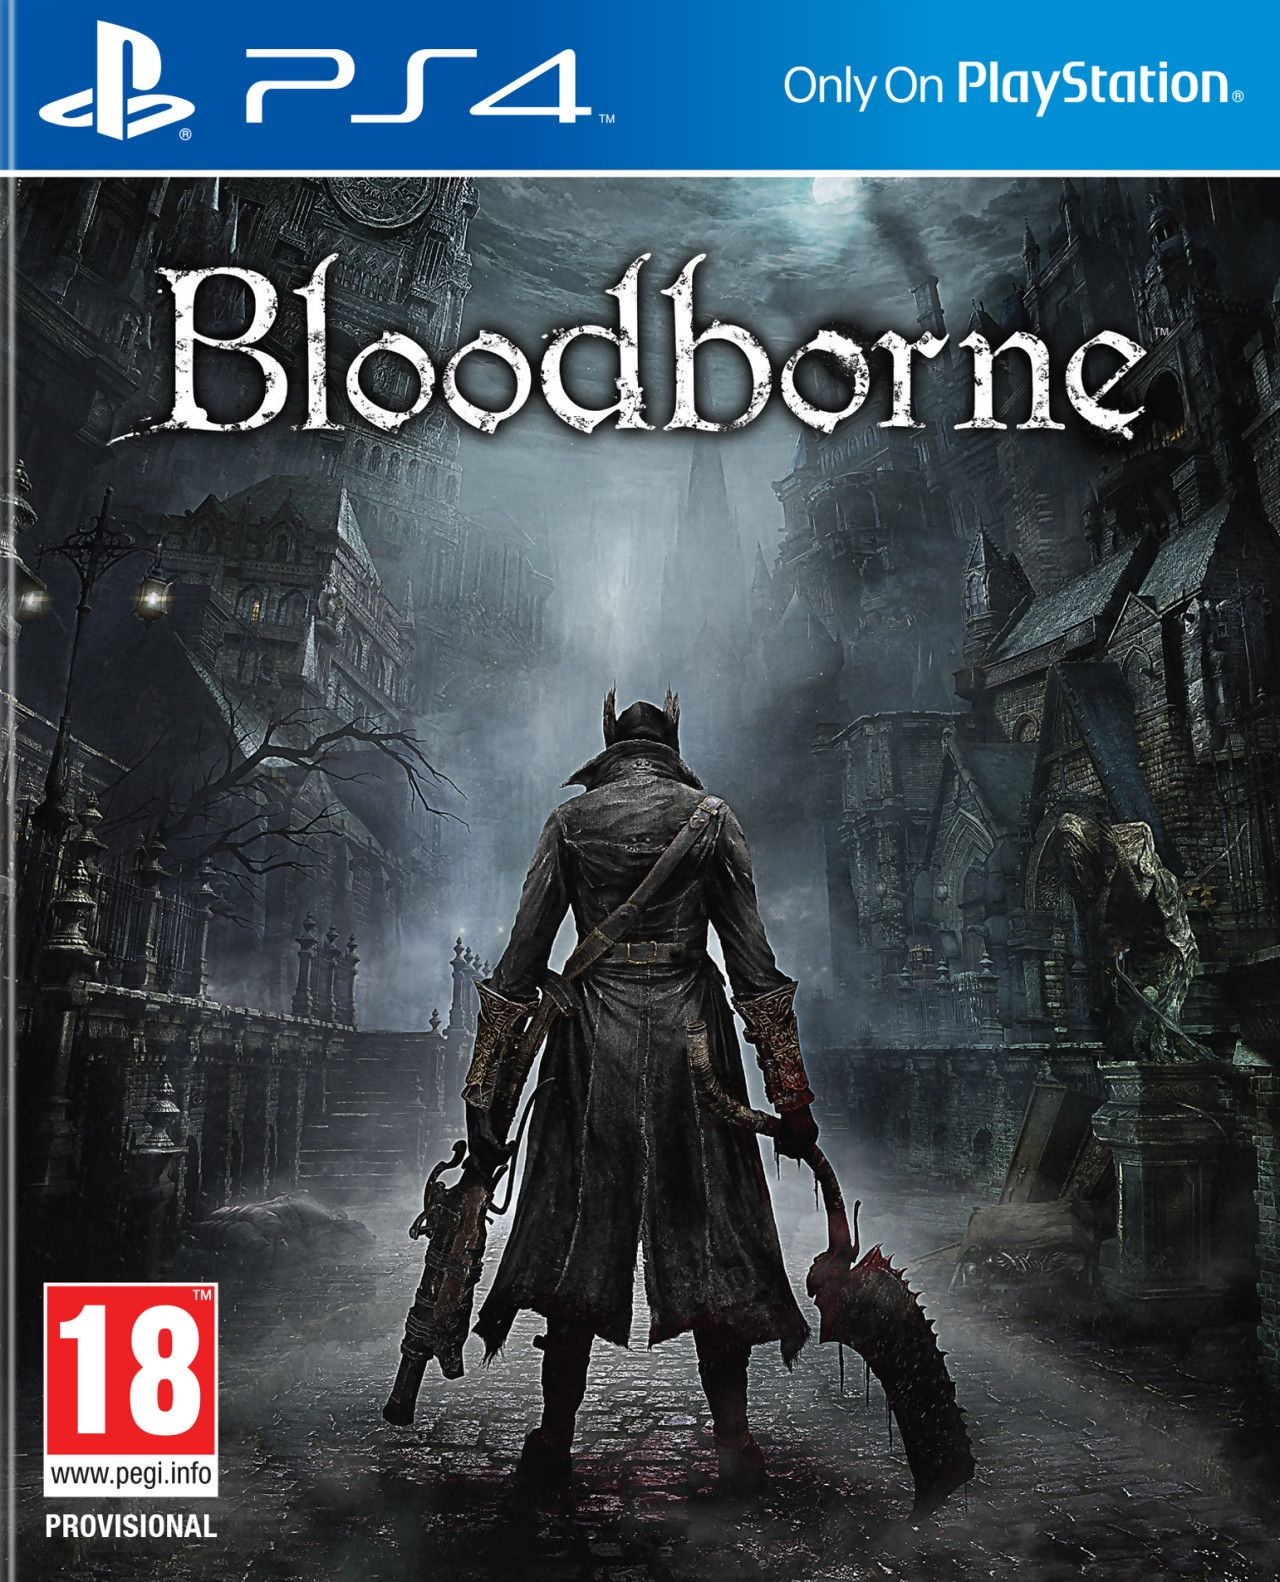 Ps4 Games Cover Bloodborne Disc Game Wallpaper Hd Bloodborne Ps4 Bloodborne Bloodborne Game